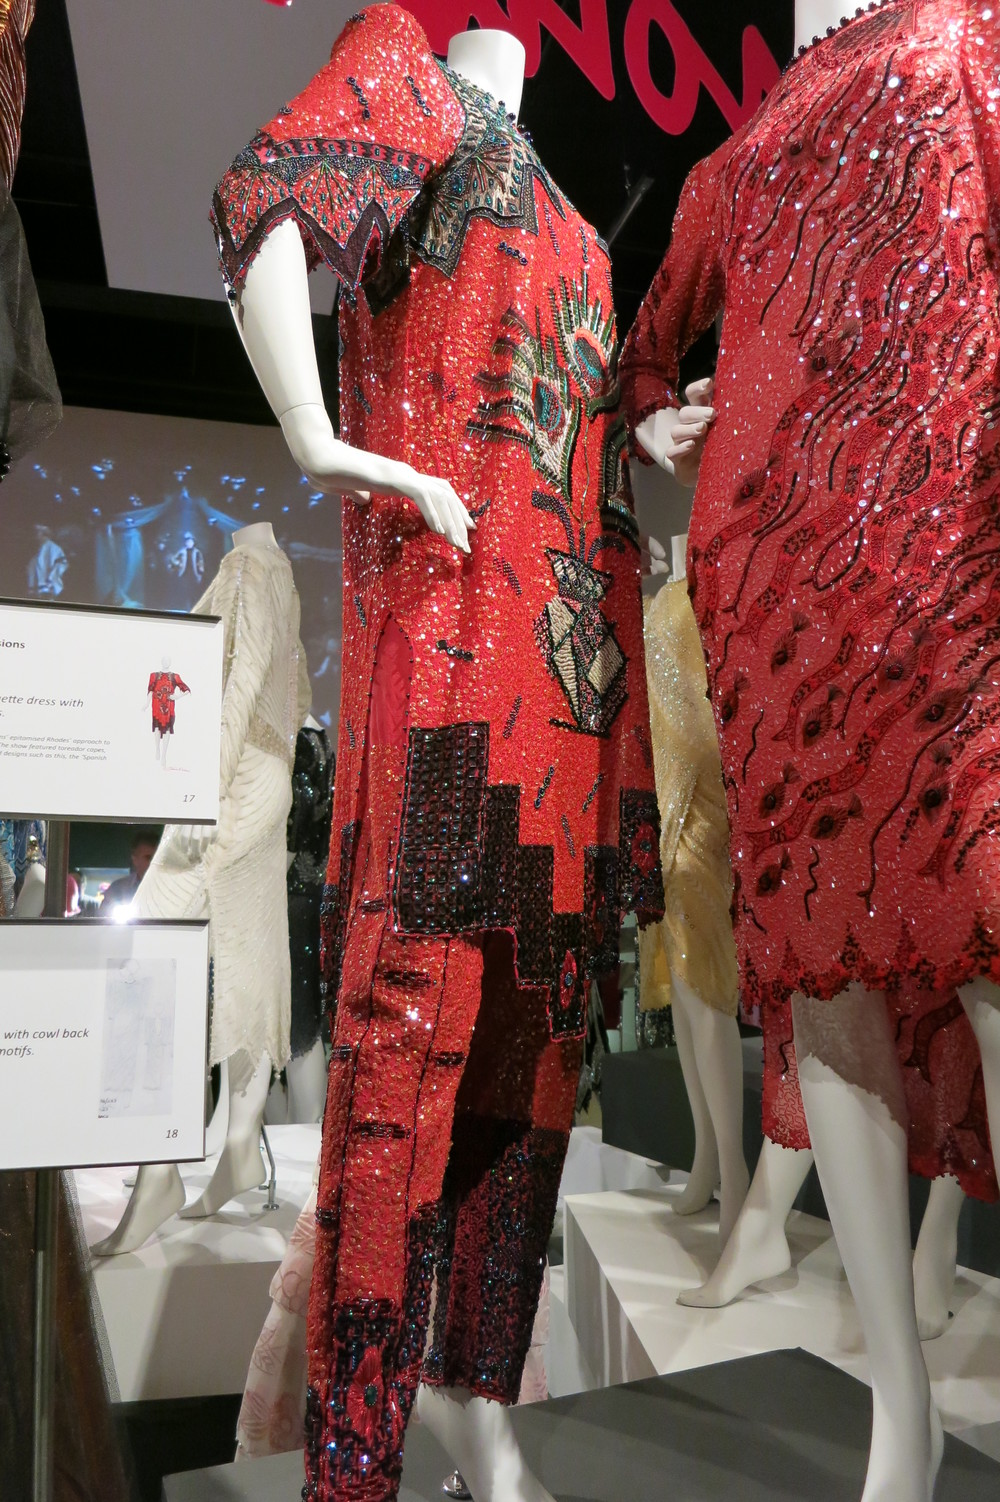 Zandra Rhodes exhibitio at the Fashion & Textile Museum, Bermondsey, London 2013 - Hand beaded dresses designed by Zandra Rhodes in the 1980s